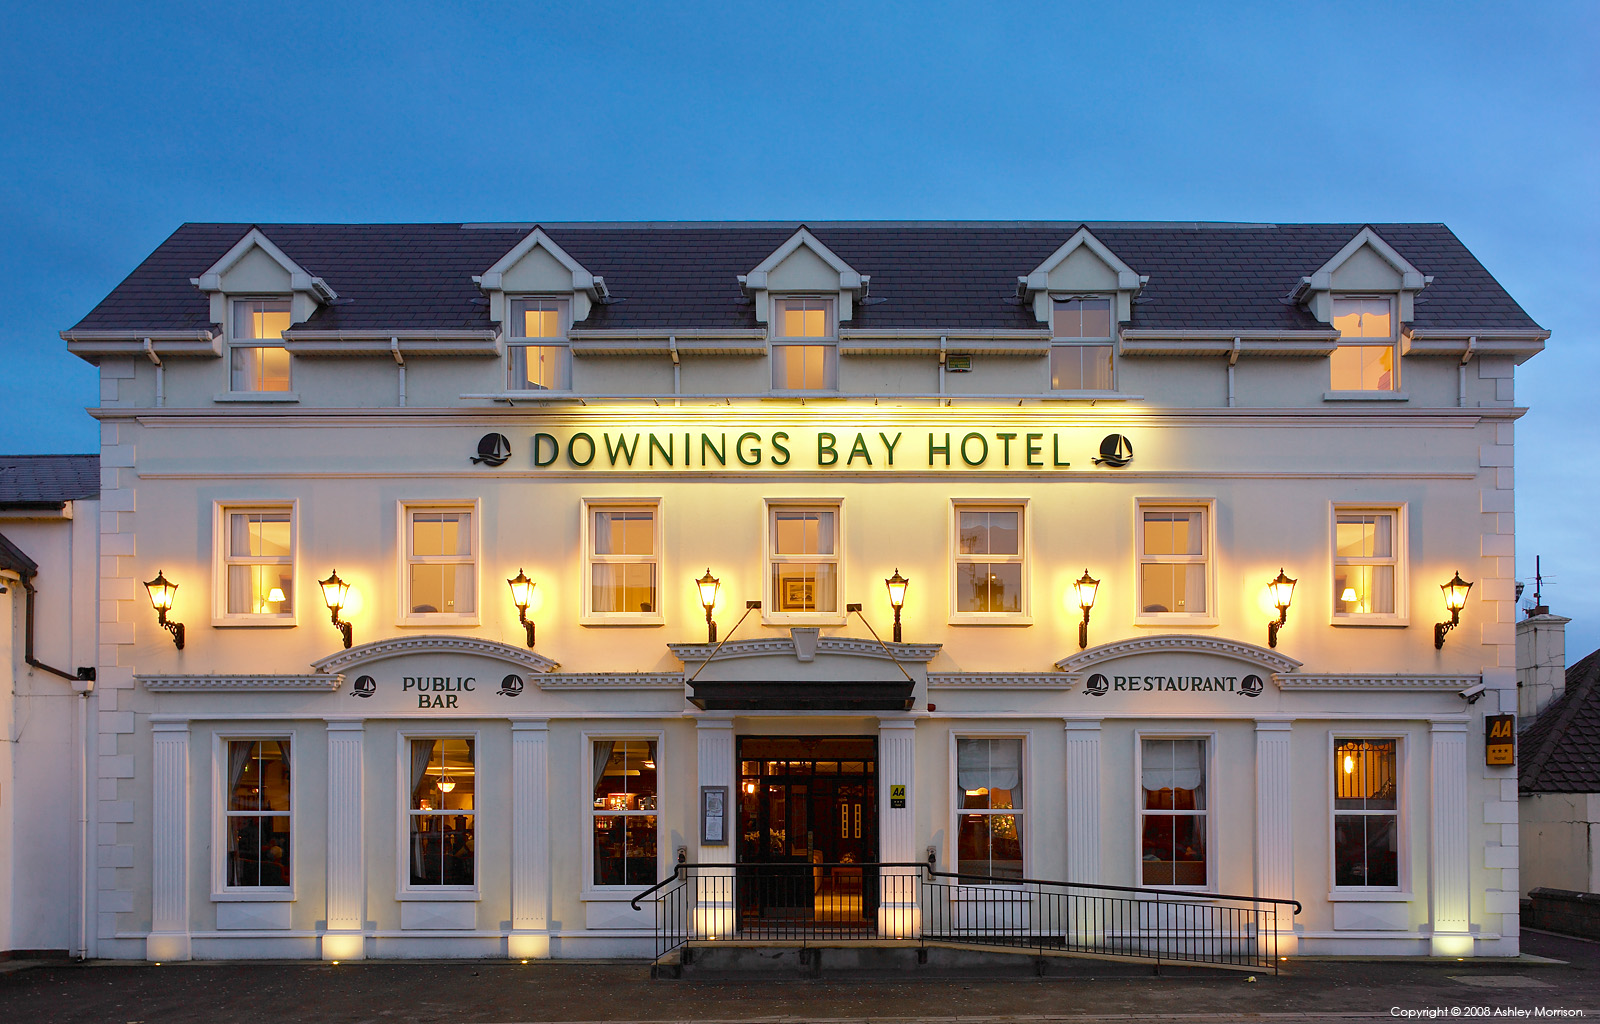 The exterior of the Downings Bay Hotel in Donegal by Ashley Morrison.